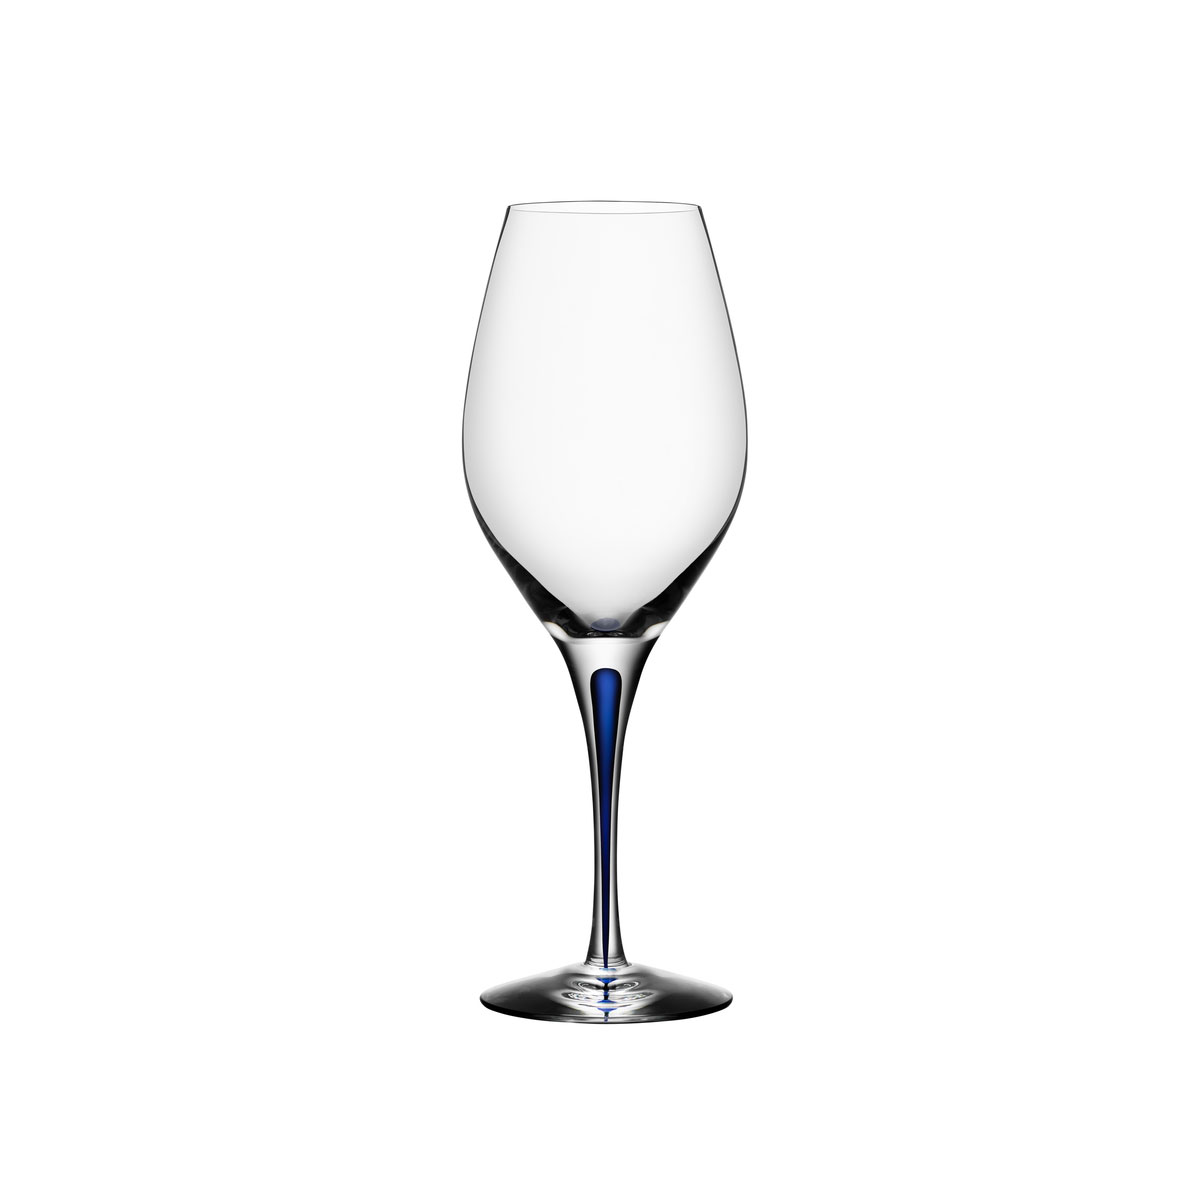 Orrefors Crystal, Intermezzo Blue Crystal Wine, Single